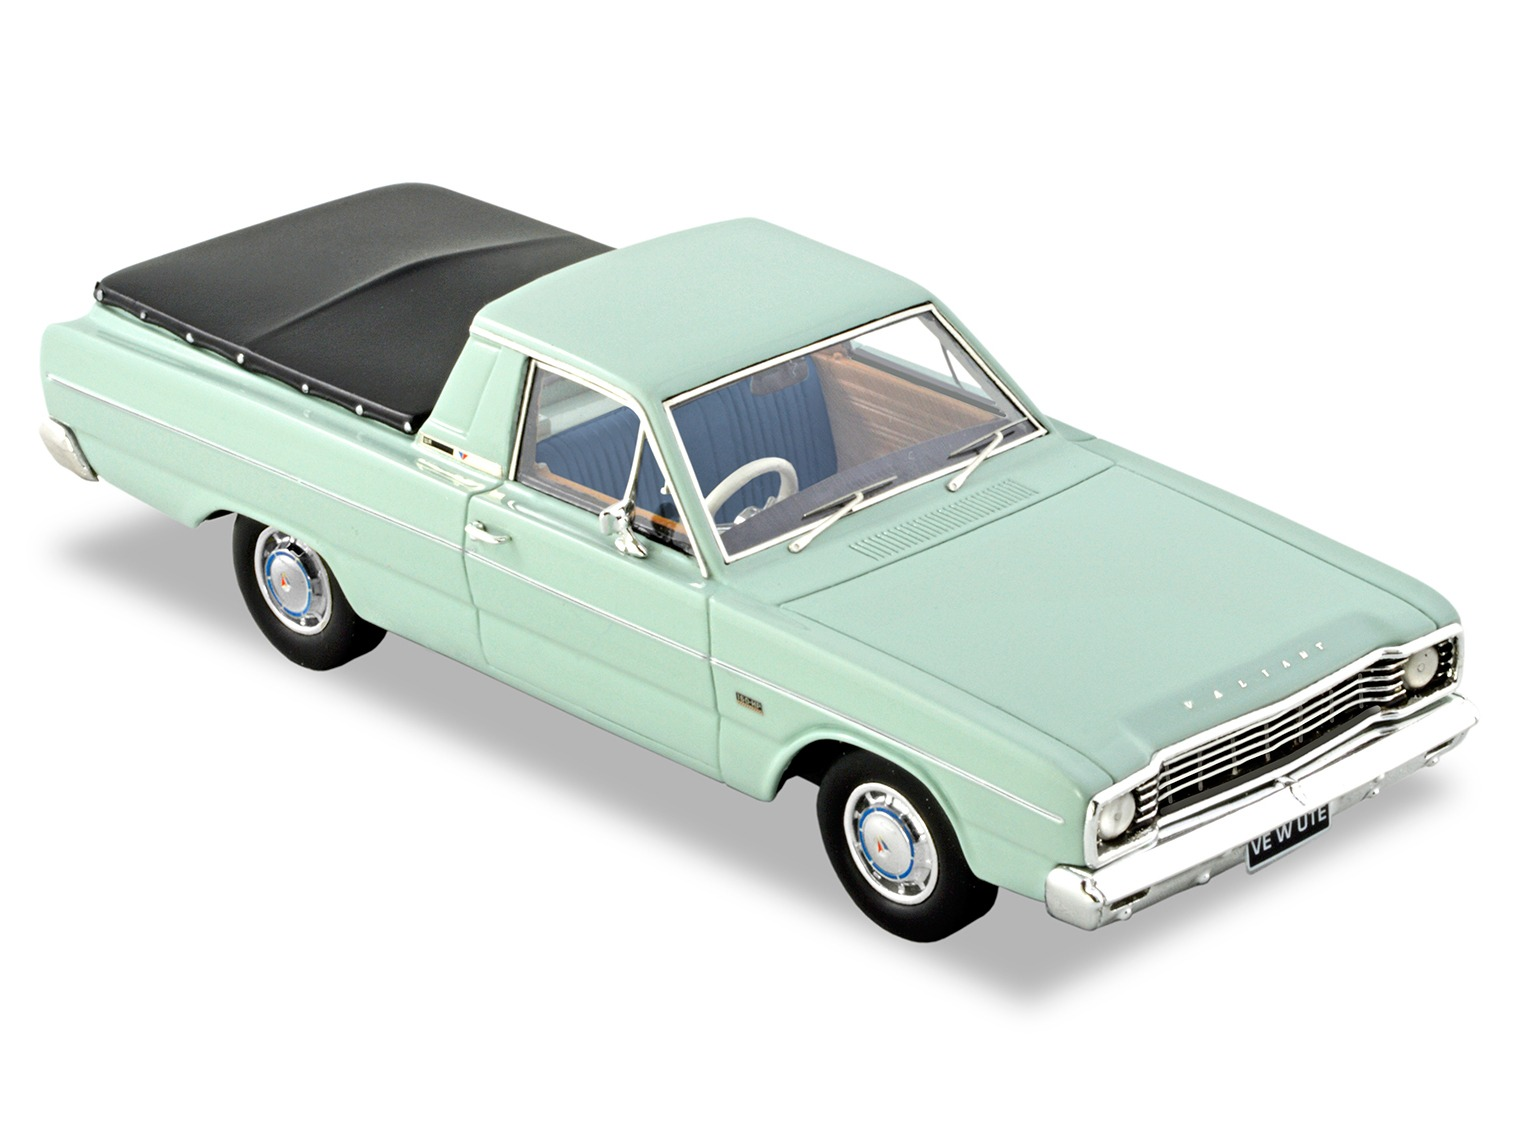 1968 VE Valiant Wayfarer Ute – Light Green